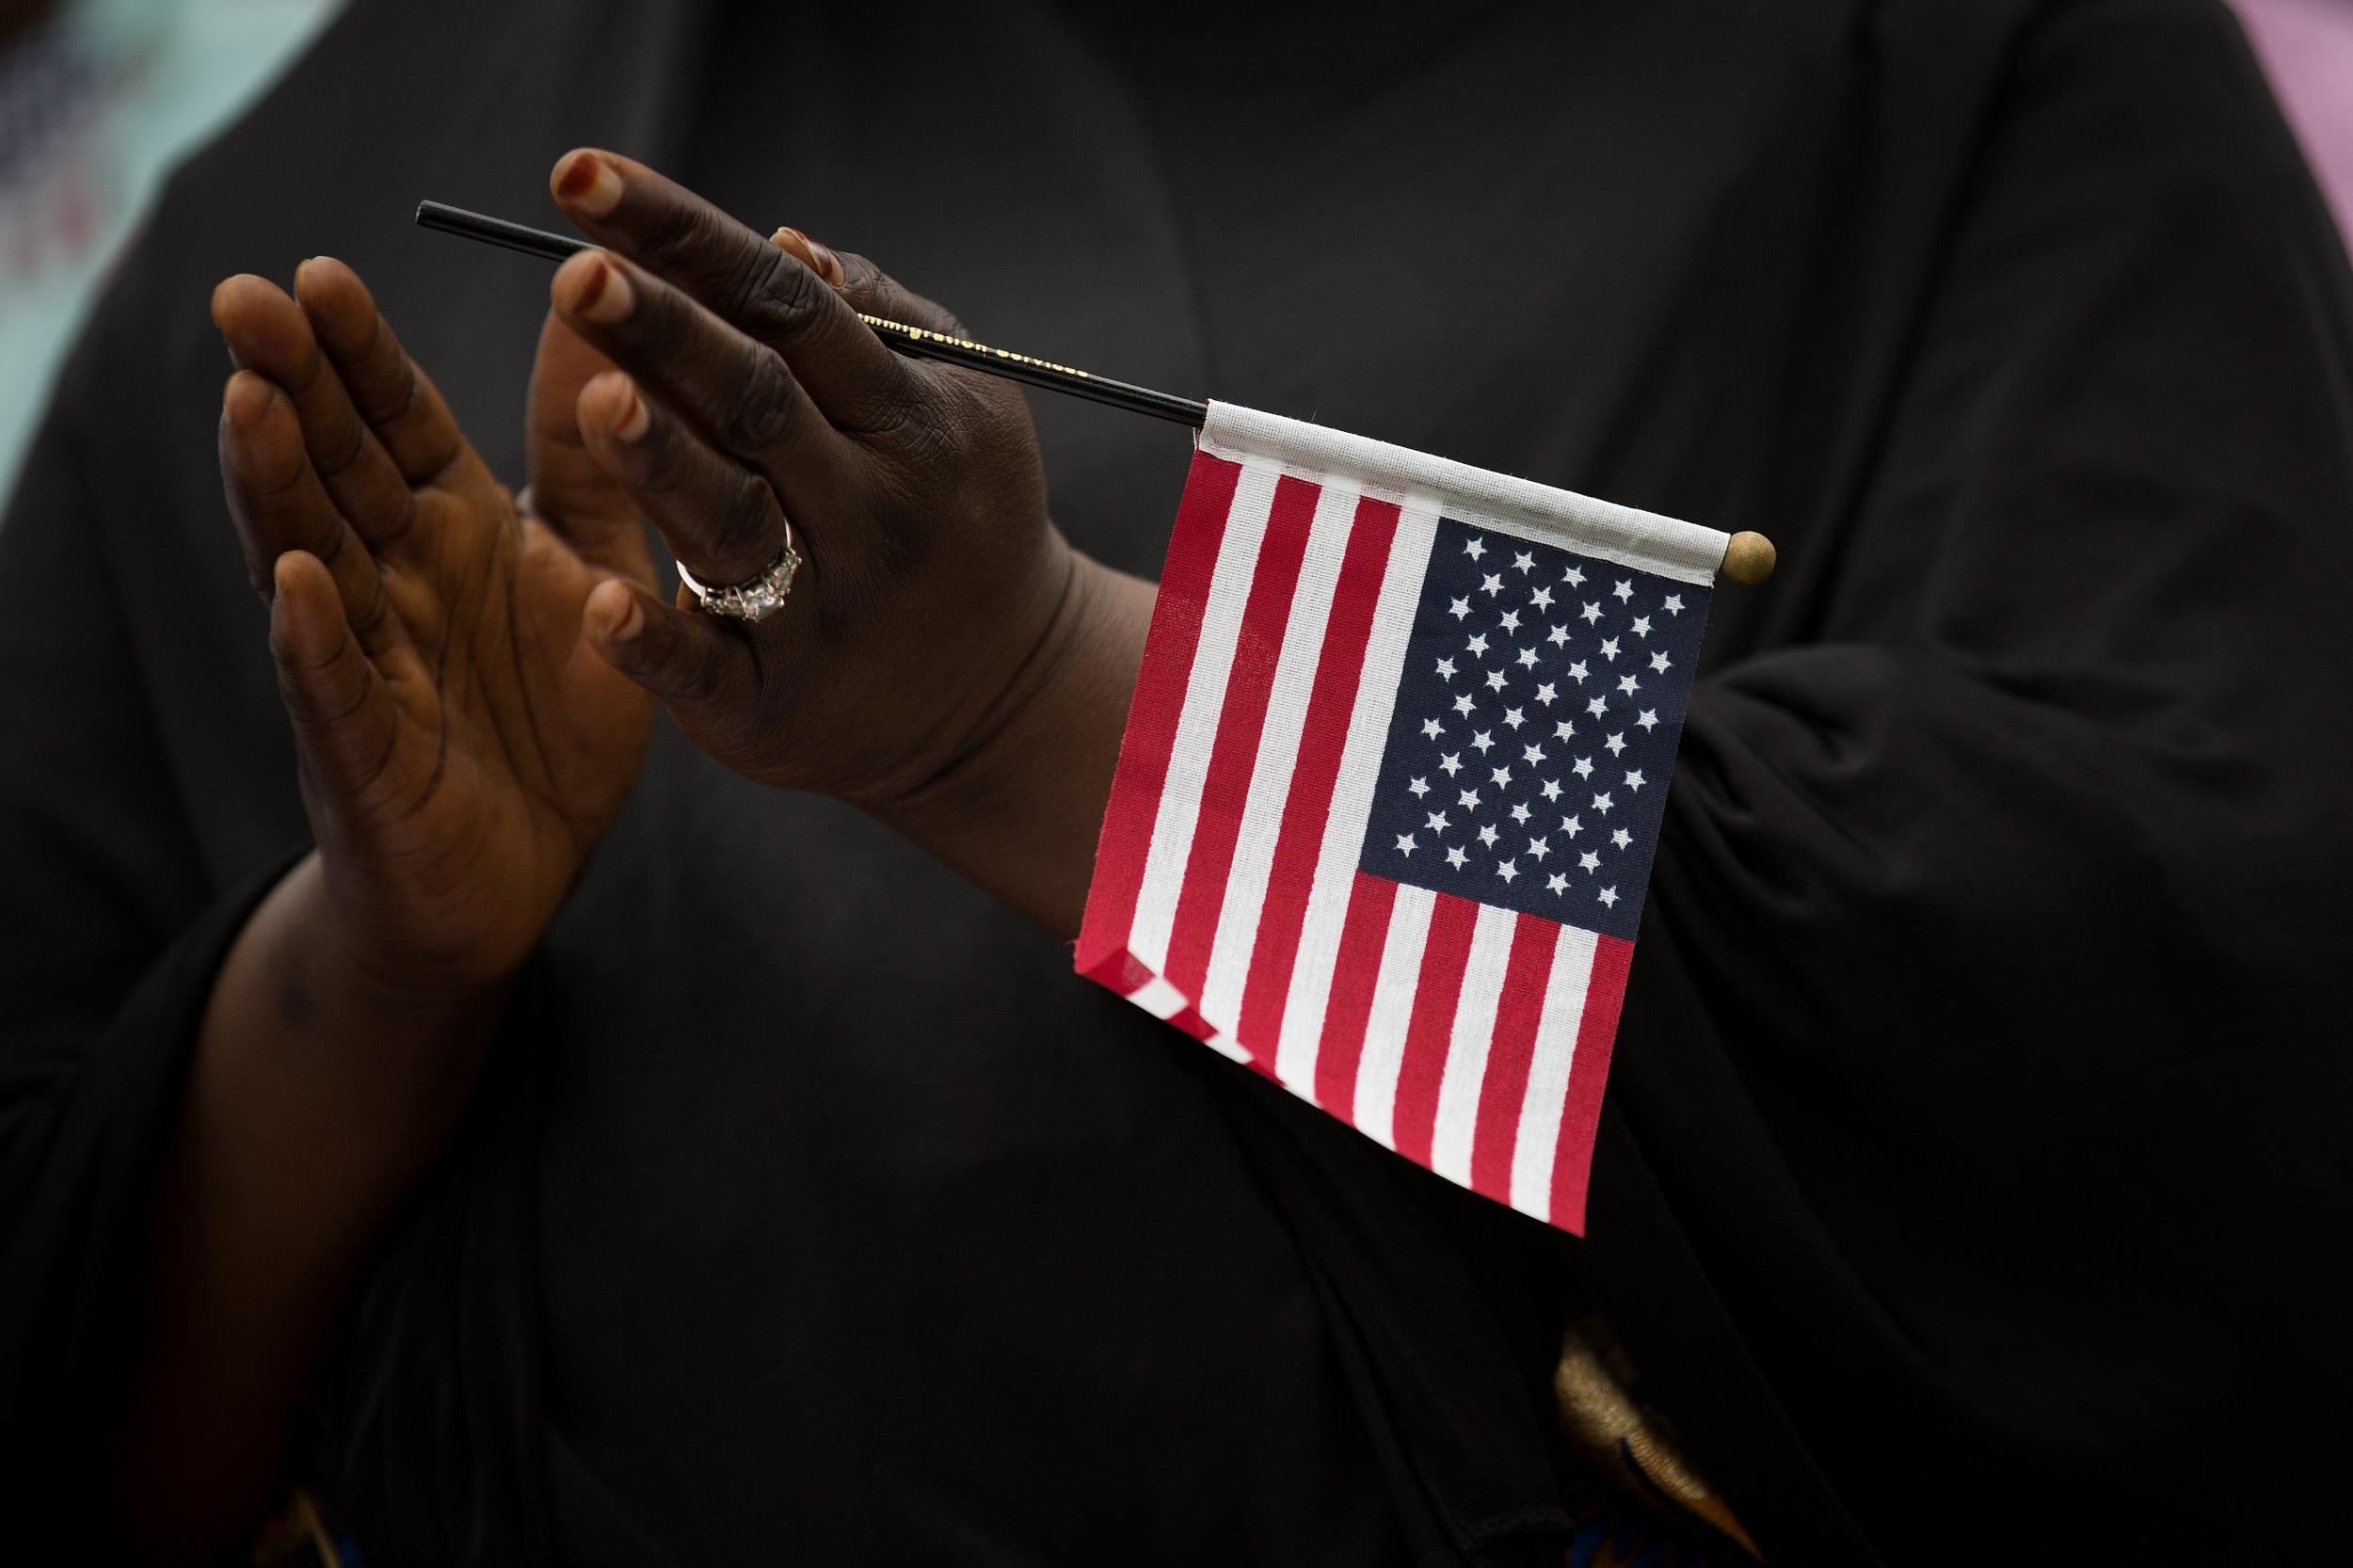 Atheist seeking US citizenship sues to remove 'So Help Me God' from oath